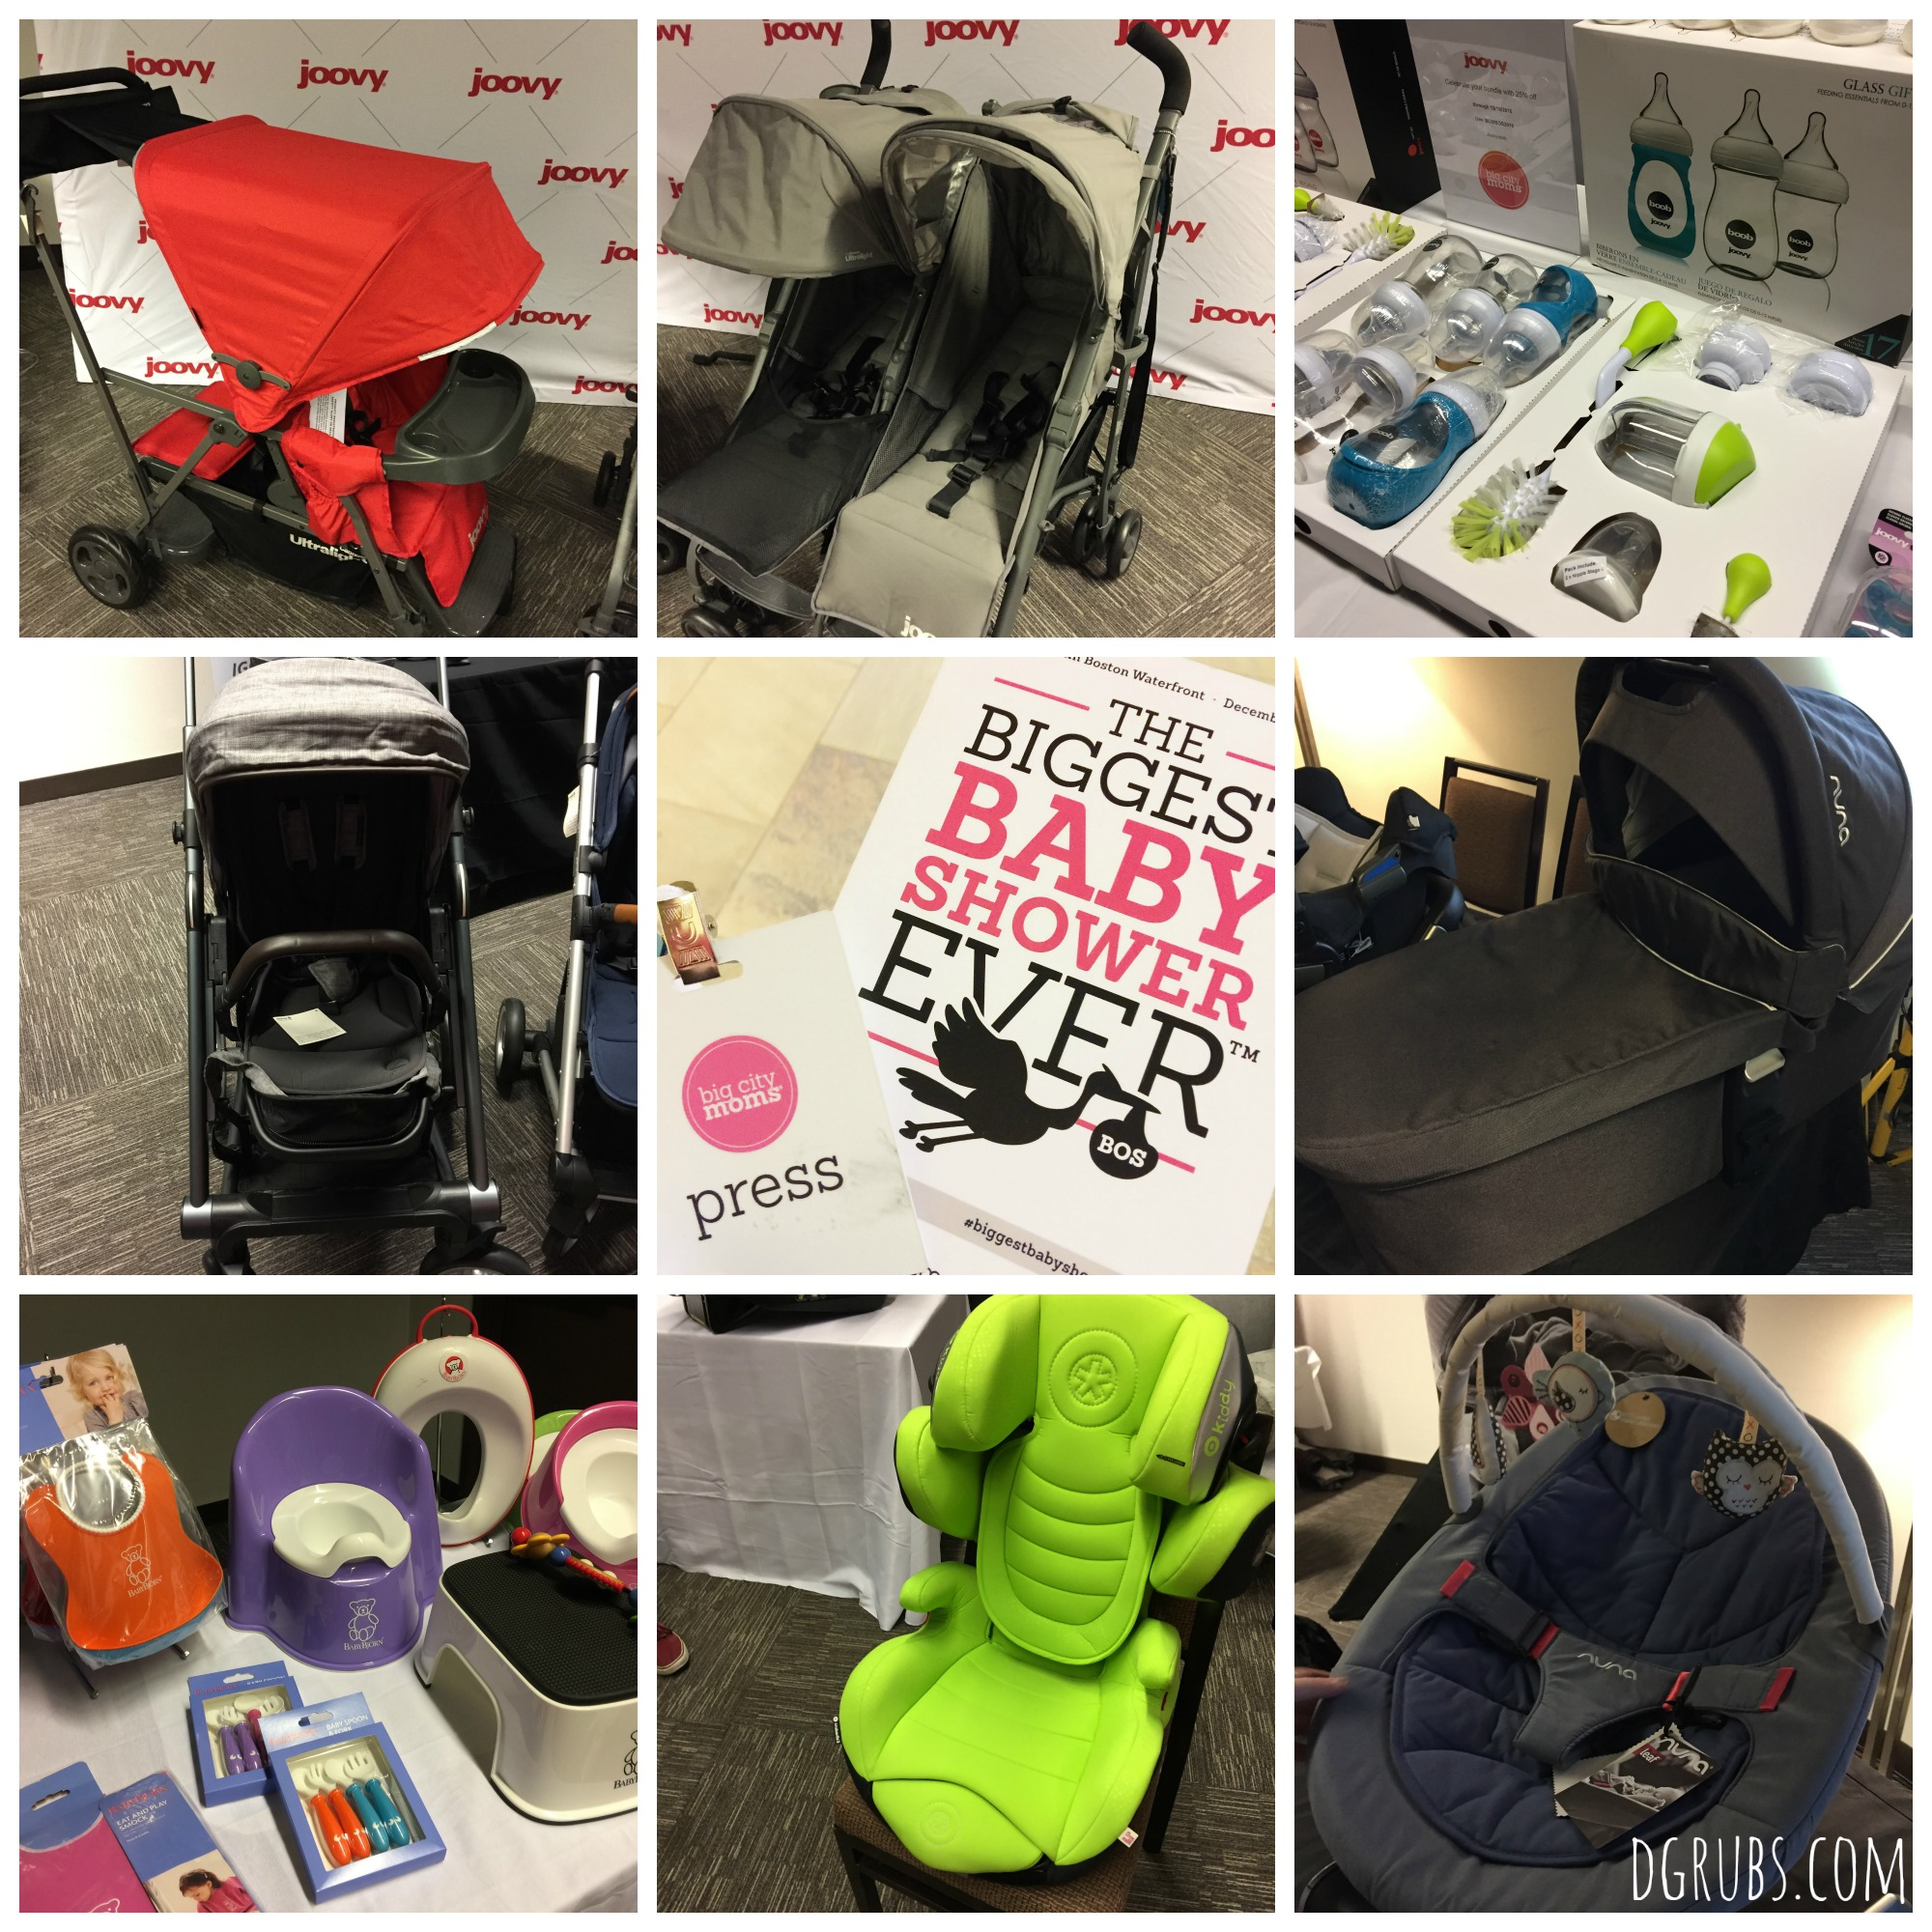 About A Week Ago I Was Invited To Check Out The Newest Baby Gear At Big  City Moms Biggest Baby Shower Ever. If I Were A First Time Mom, This Would  Be ...